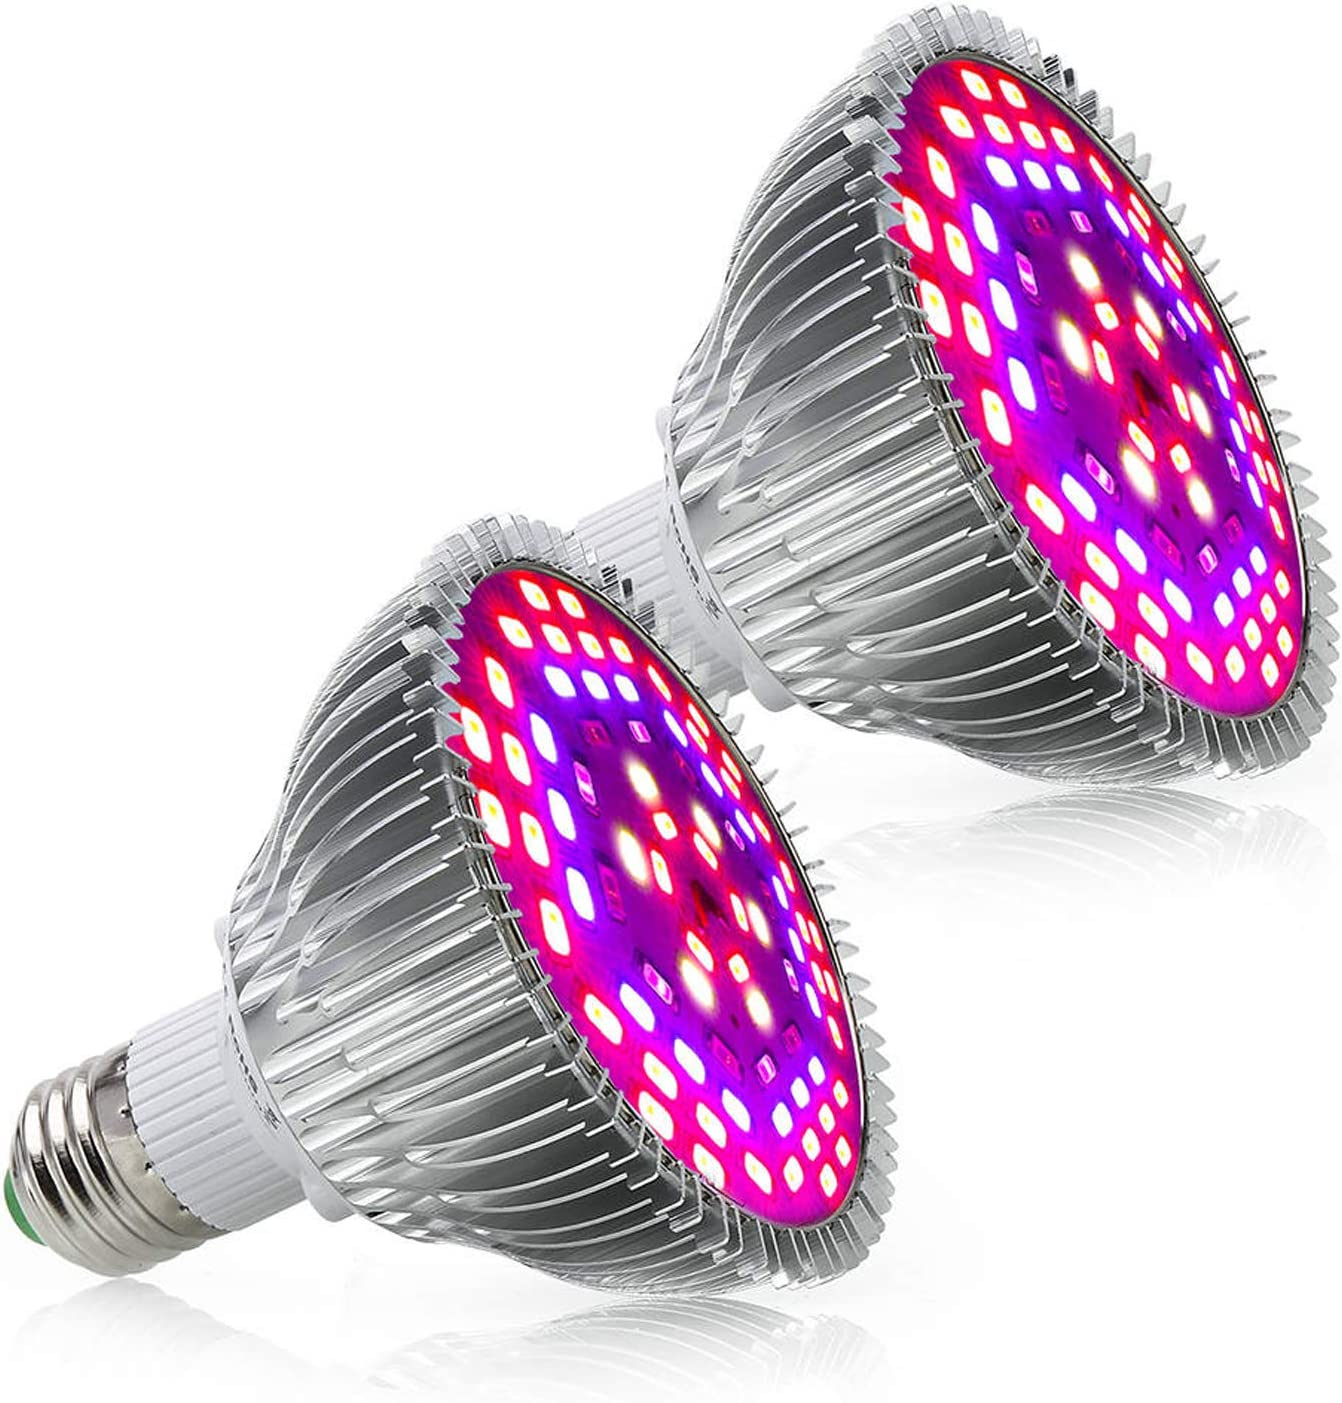 Led Grow Light Bulb 50W - Led Plant Light Full Spectrum Grow Lights E26/ E27 Base 78 LEDs for Indoor Plants, Greenhouse Hydroponic Growing, Garden Flowers, Vegetables - 2 Pcs